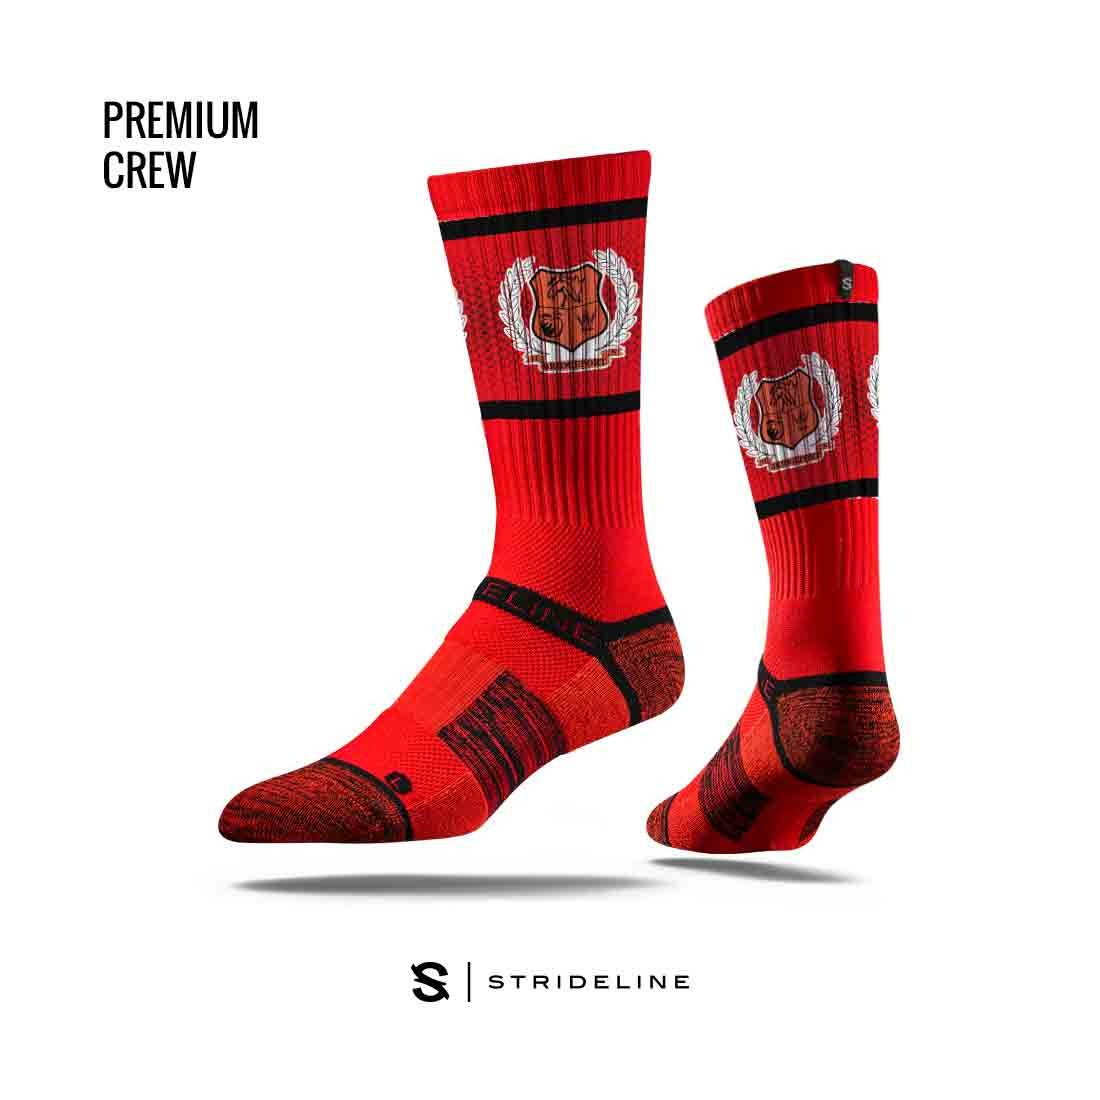 Bridgeport High School Apparel | Socks | Premium